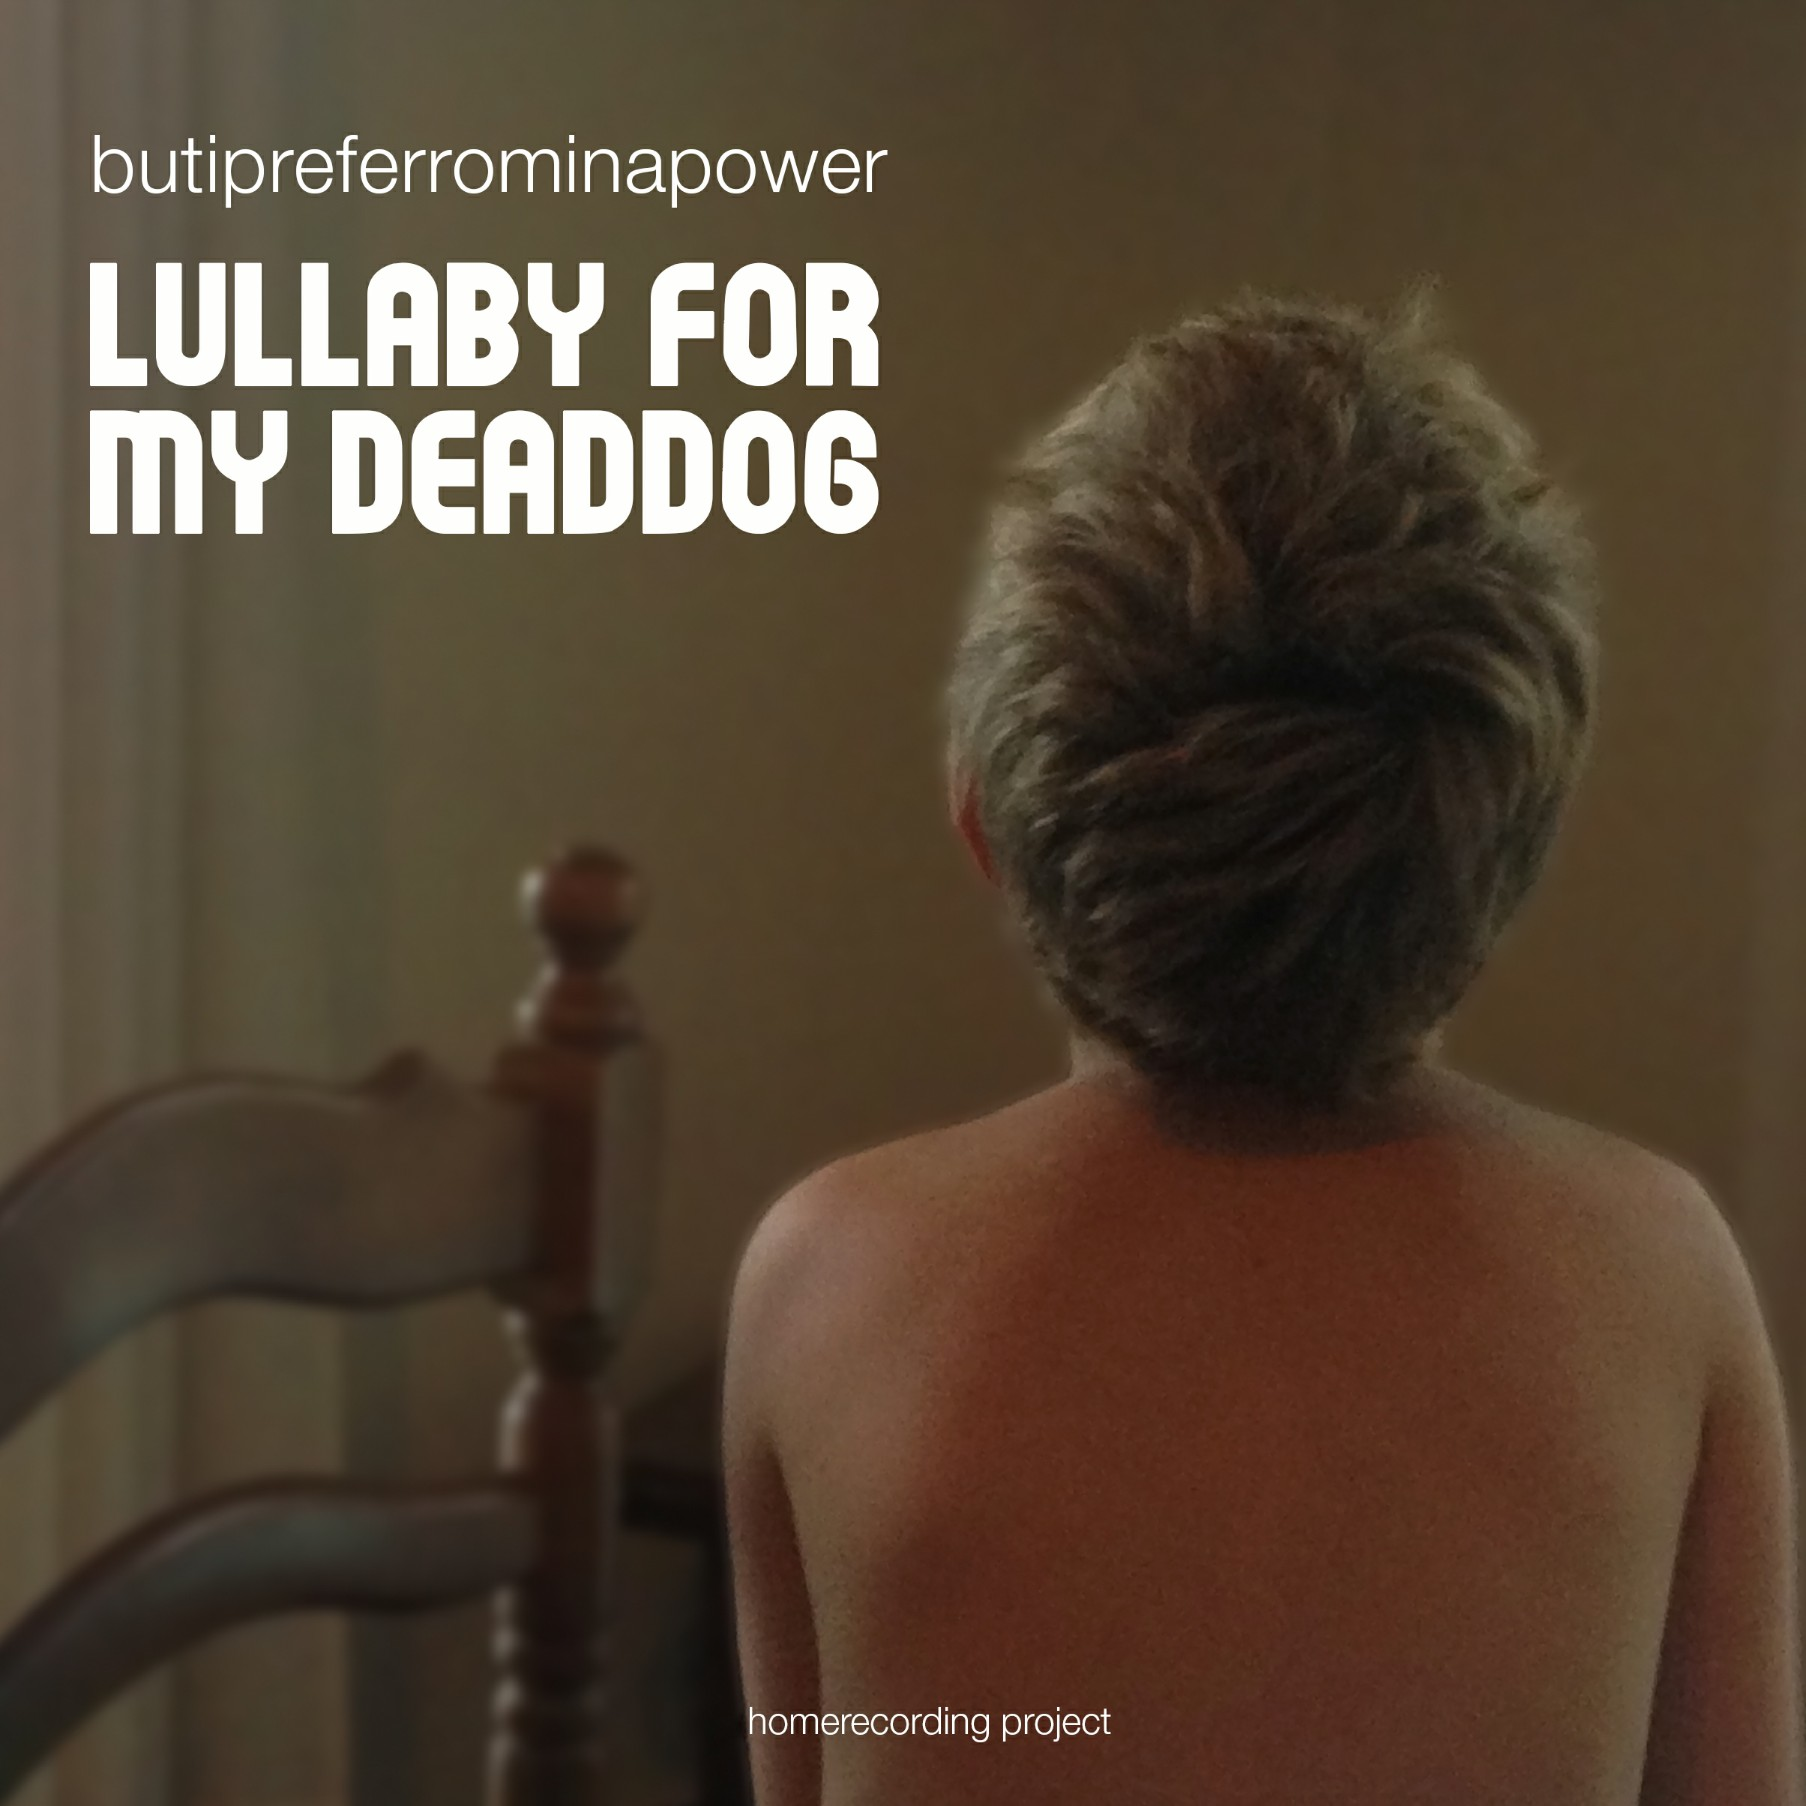 IYE19 - BUTIPREFERROMINAPOWER - LULLABY FOR MY DEADDOG 6